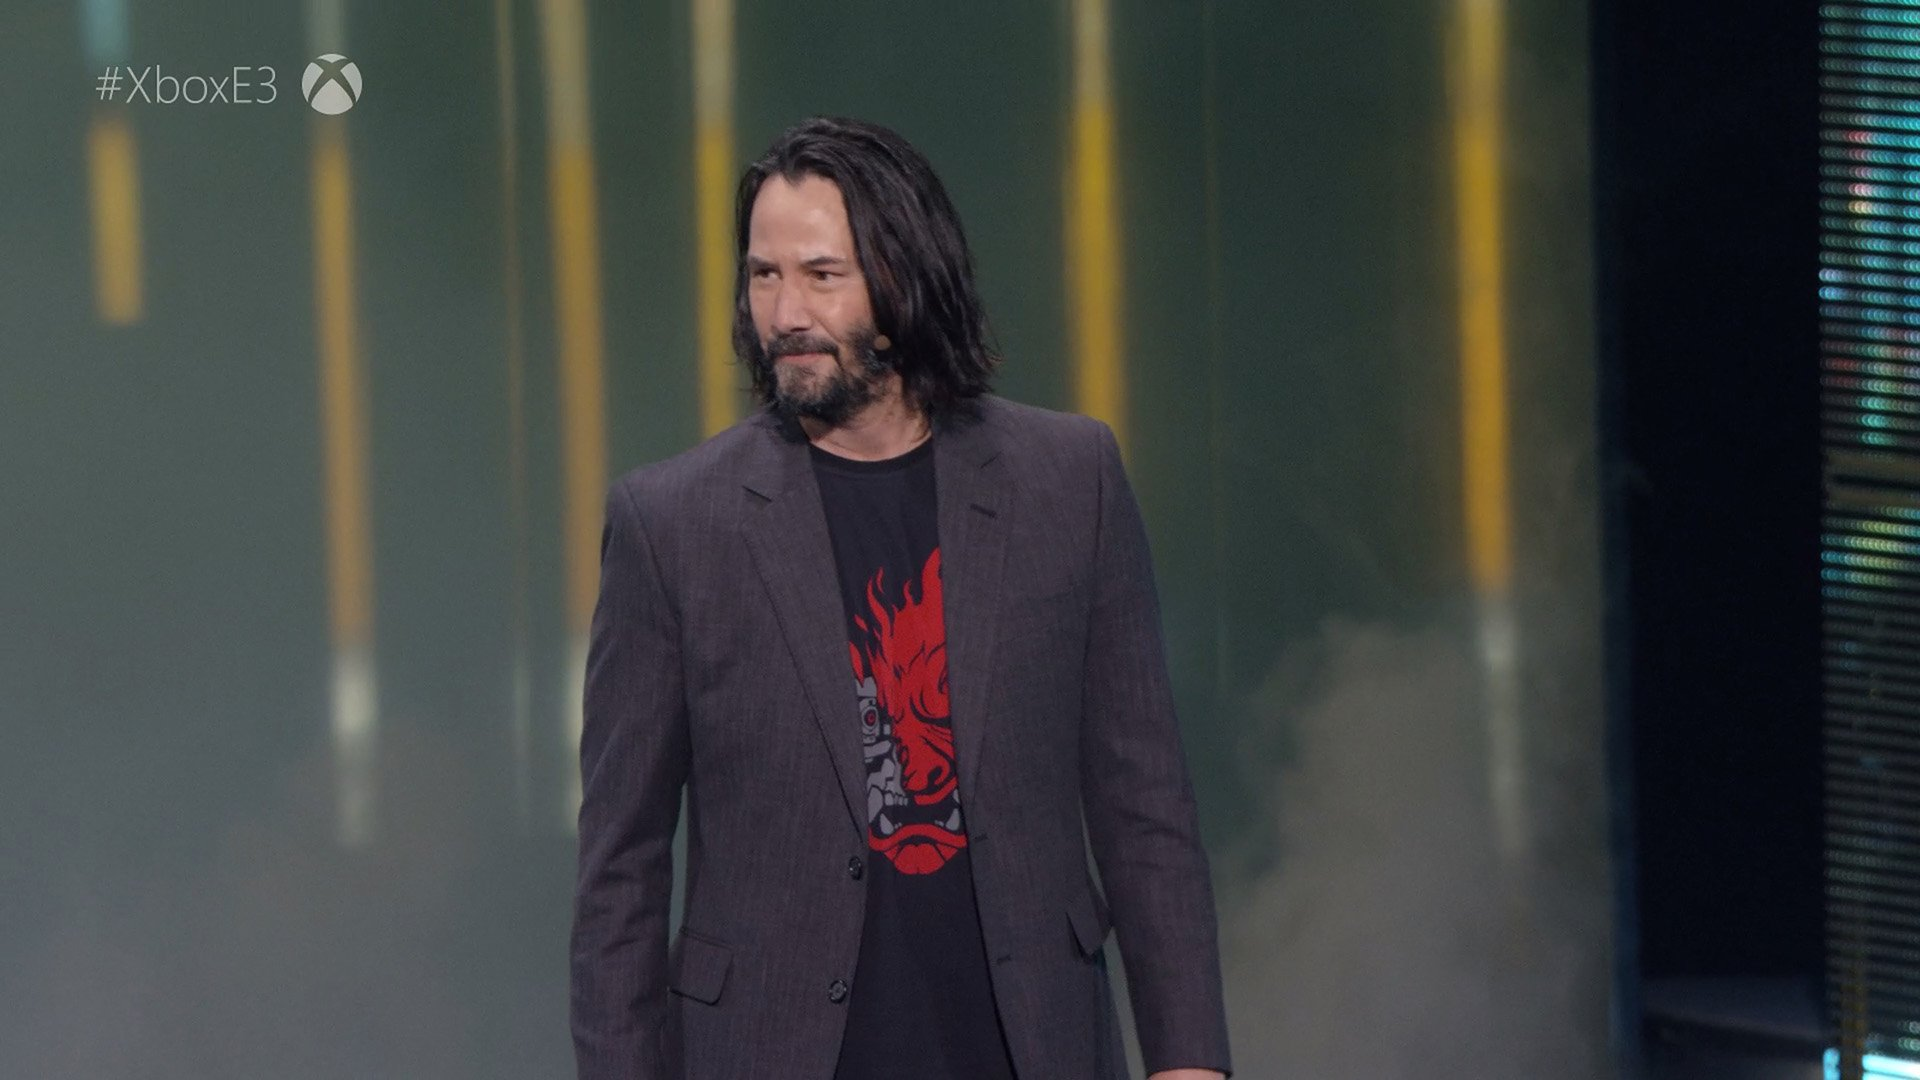 CDPR confirms Keanu Reeves plays a major part in Cyberpunk 2077